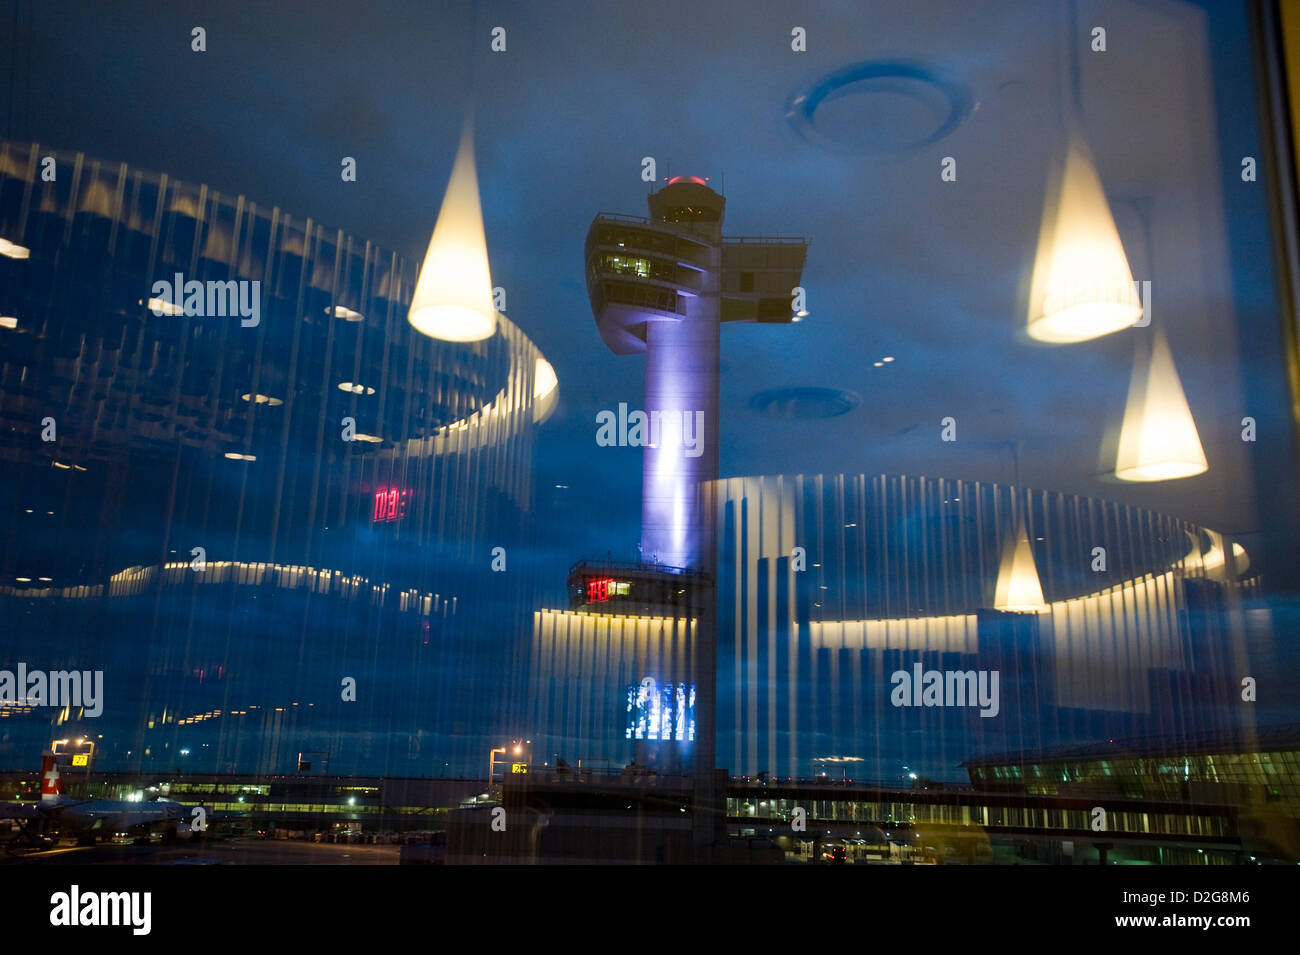 The Control Tower is floodlit at dusk at John F. Kennedy Airport, JFK Airport, New York, USA. Photographed with - Stock Image